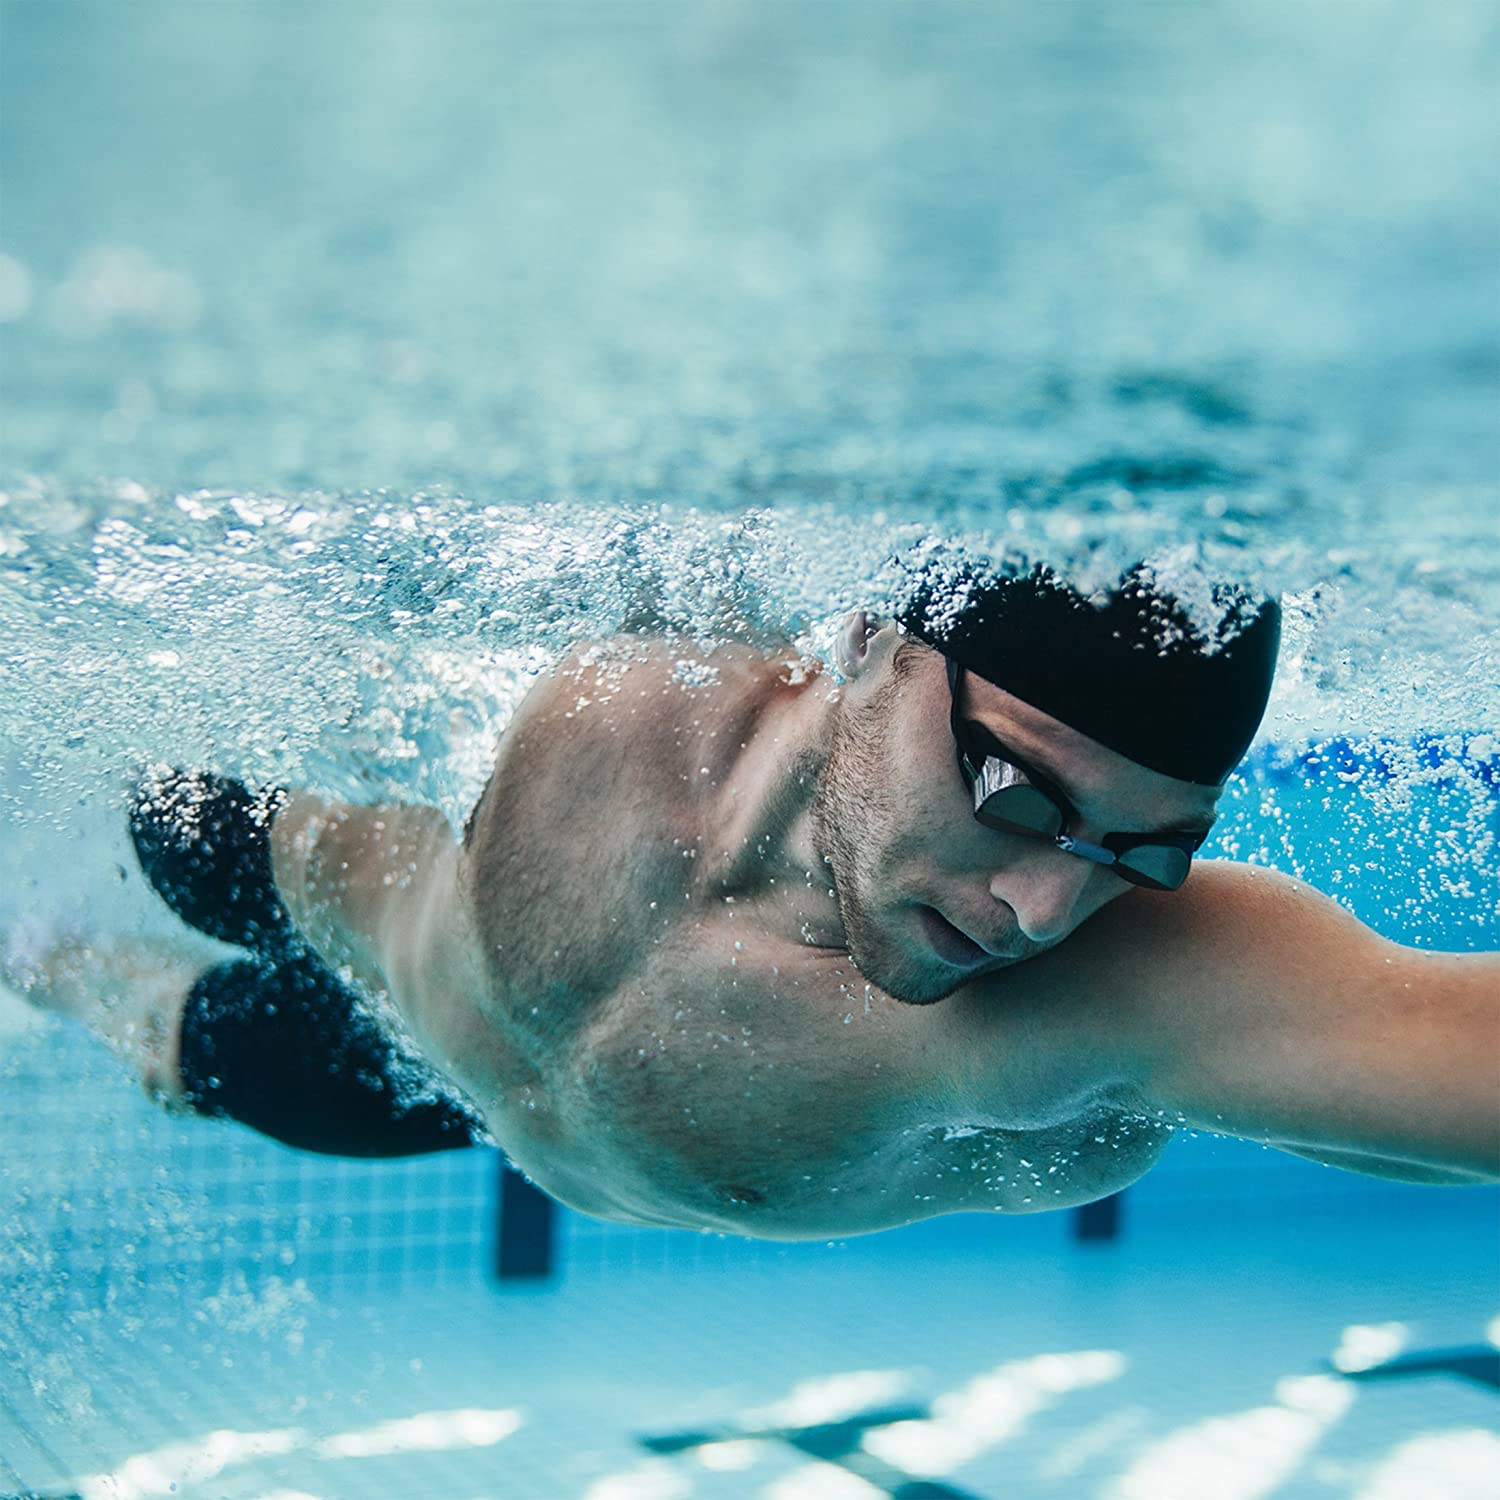 Ultrasport Earplugs made of silicone flexible protection for swimming or fr drowning out noise colour: green flexible to fit to every ear shape